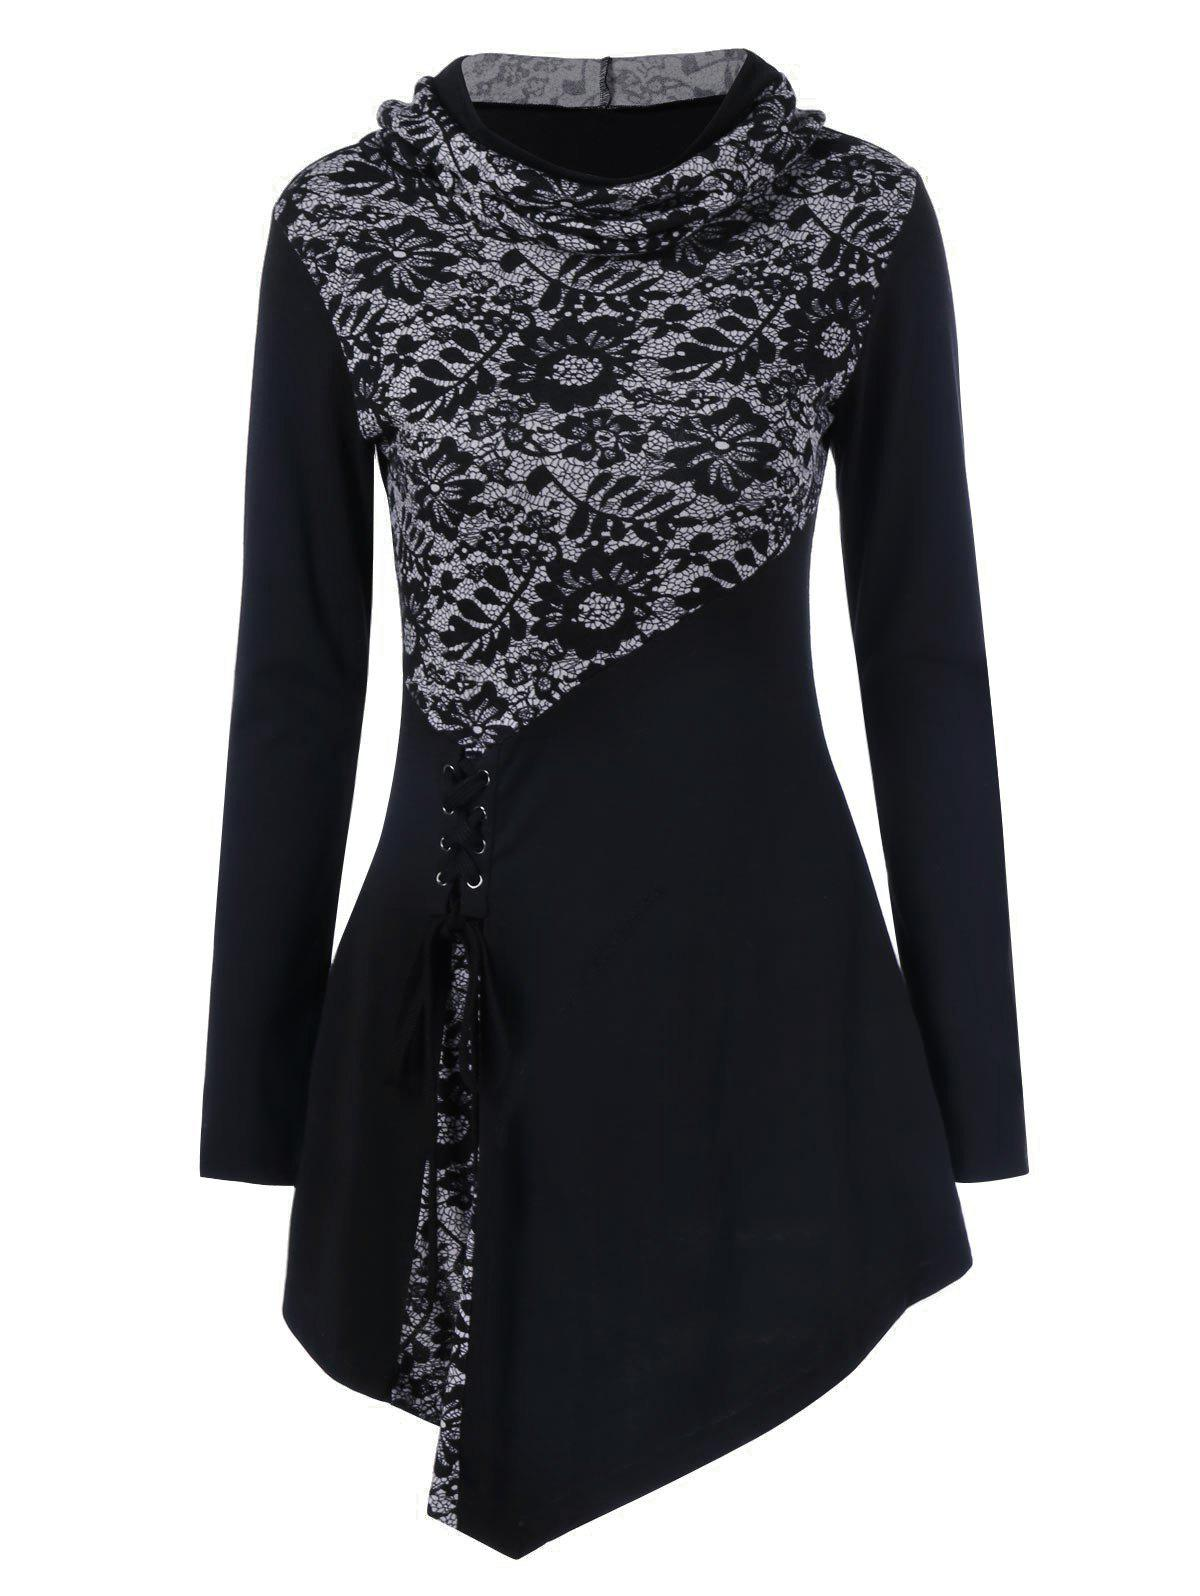 Lace-Up Asymmetrical Long Sleeve Hooded T-ShirtWOMEN<br><br>Size: 4XL; Color: BLACK; Material: Polyester,Spandex; Sleeve Length: Full; Collar: Hooded; Style: Fashion; Embellishment: Lace; Pattern Type: Patchwork; Season: Fall,Spring; Weight: 0.3700kg; Package Contents: 1 x T-Shirt;